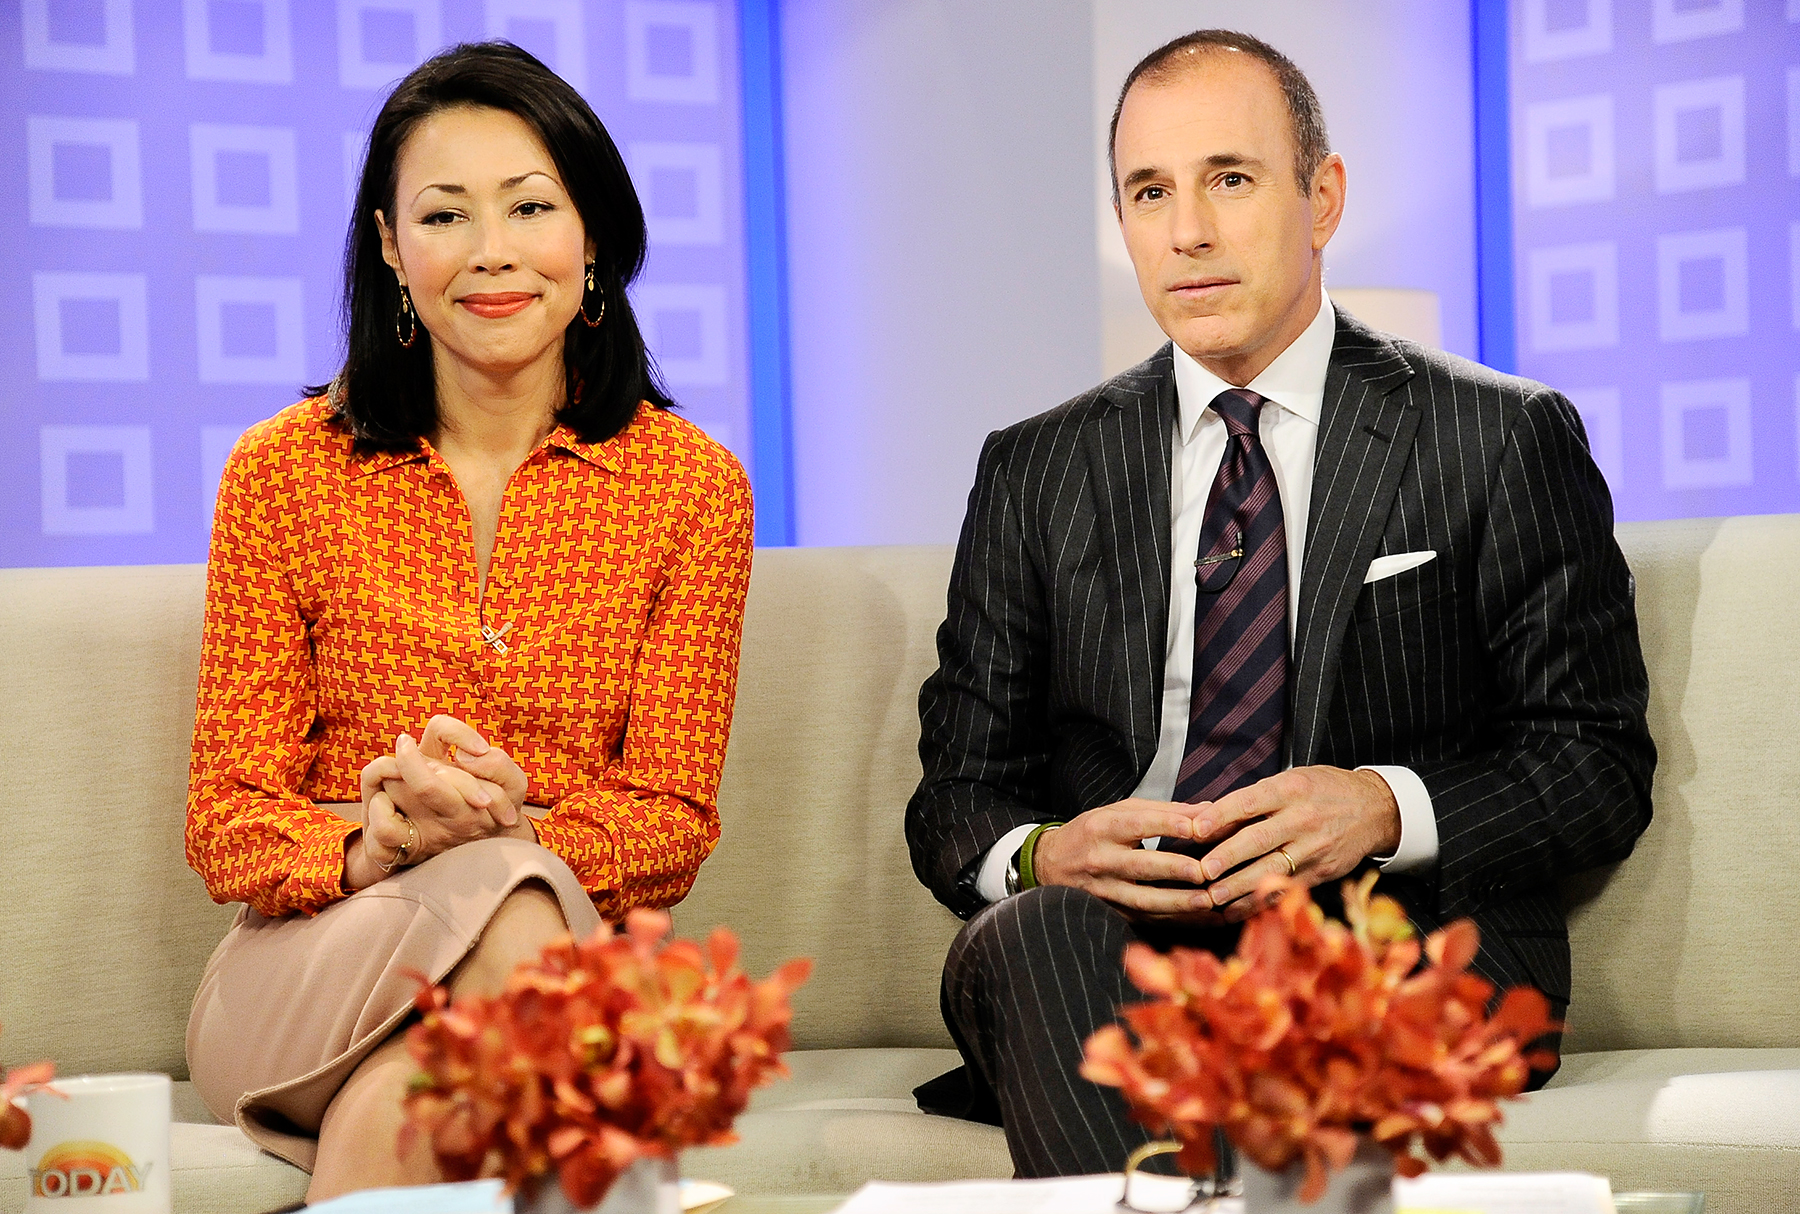 Ann Curry 'Isn't Relishing' in Matt Lauer Sexual Harassment Allegations